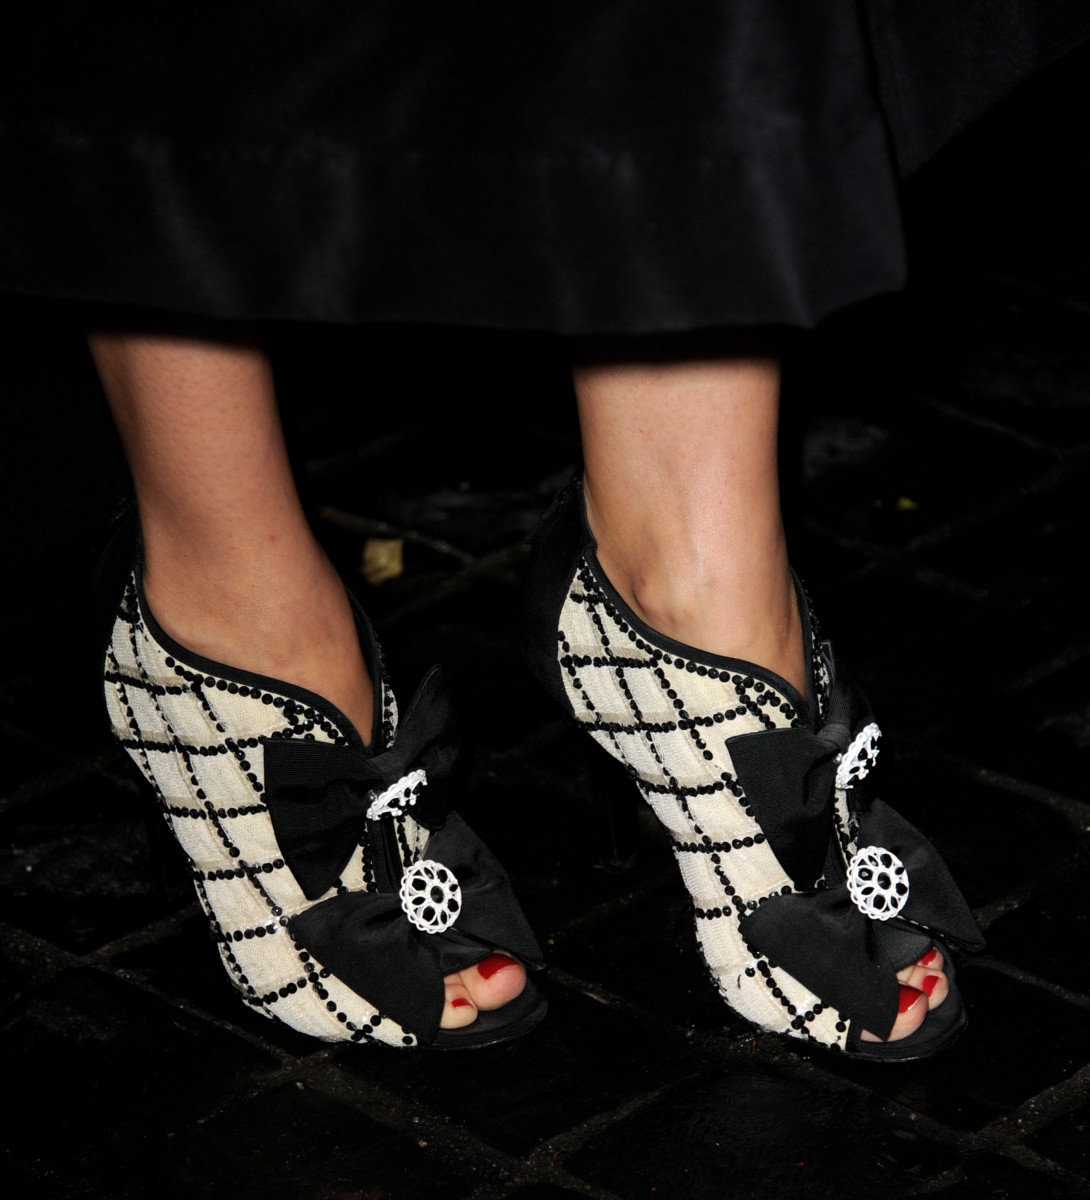 Diane Kruger's bow-bedecked Chanel shoes from the Spring 2009 collection.